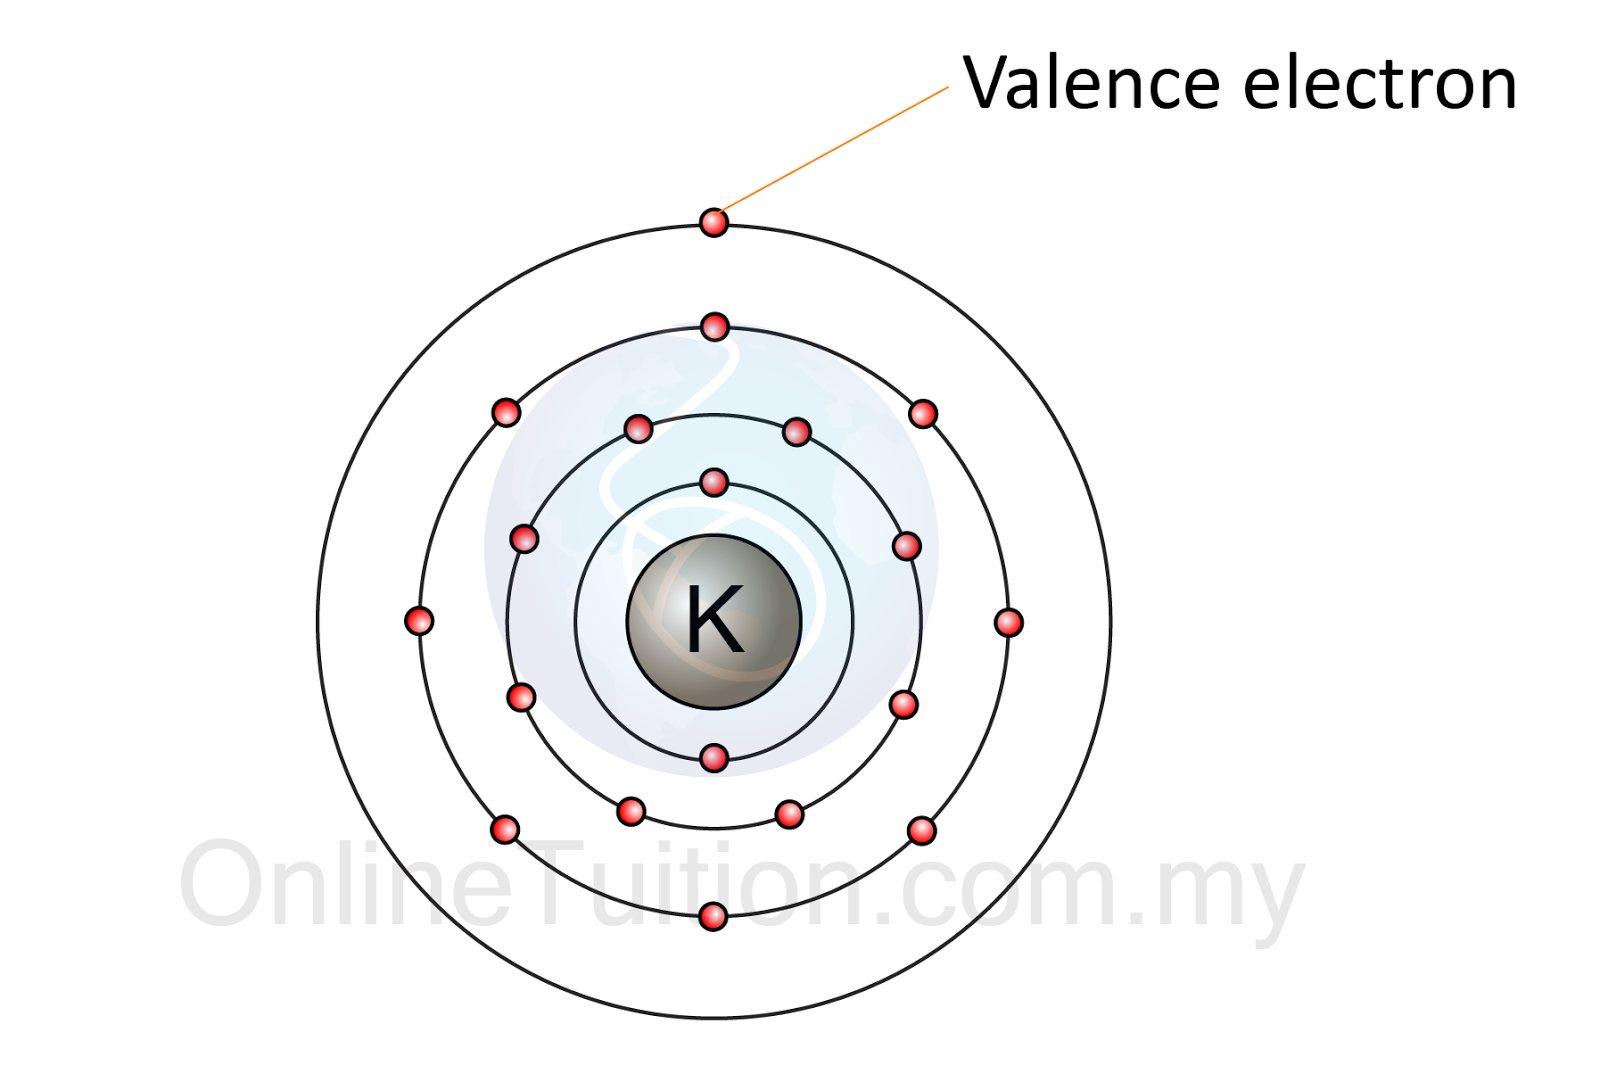 relationship between group number and electron configuration